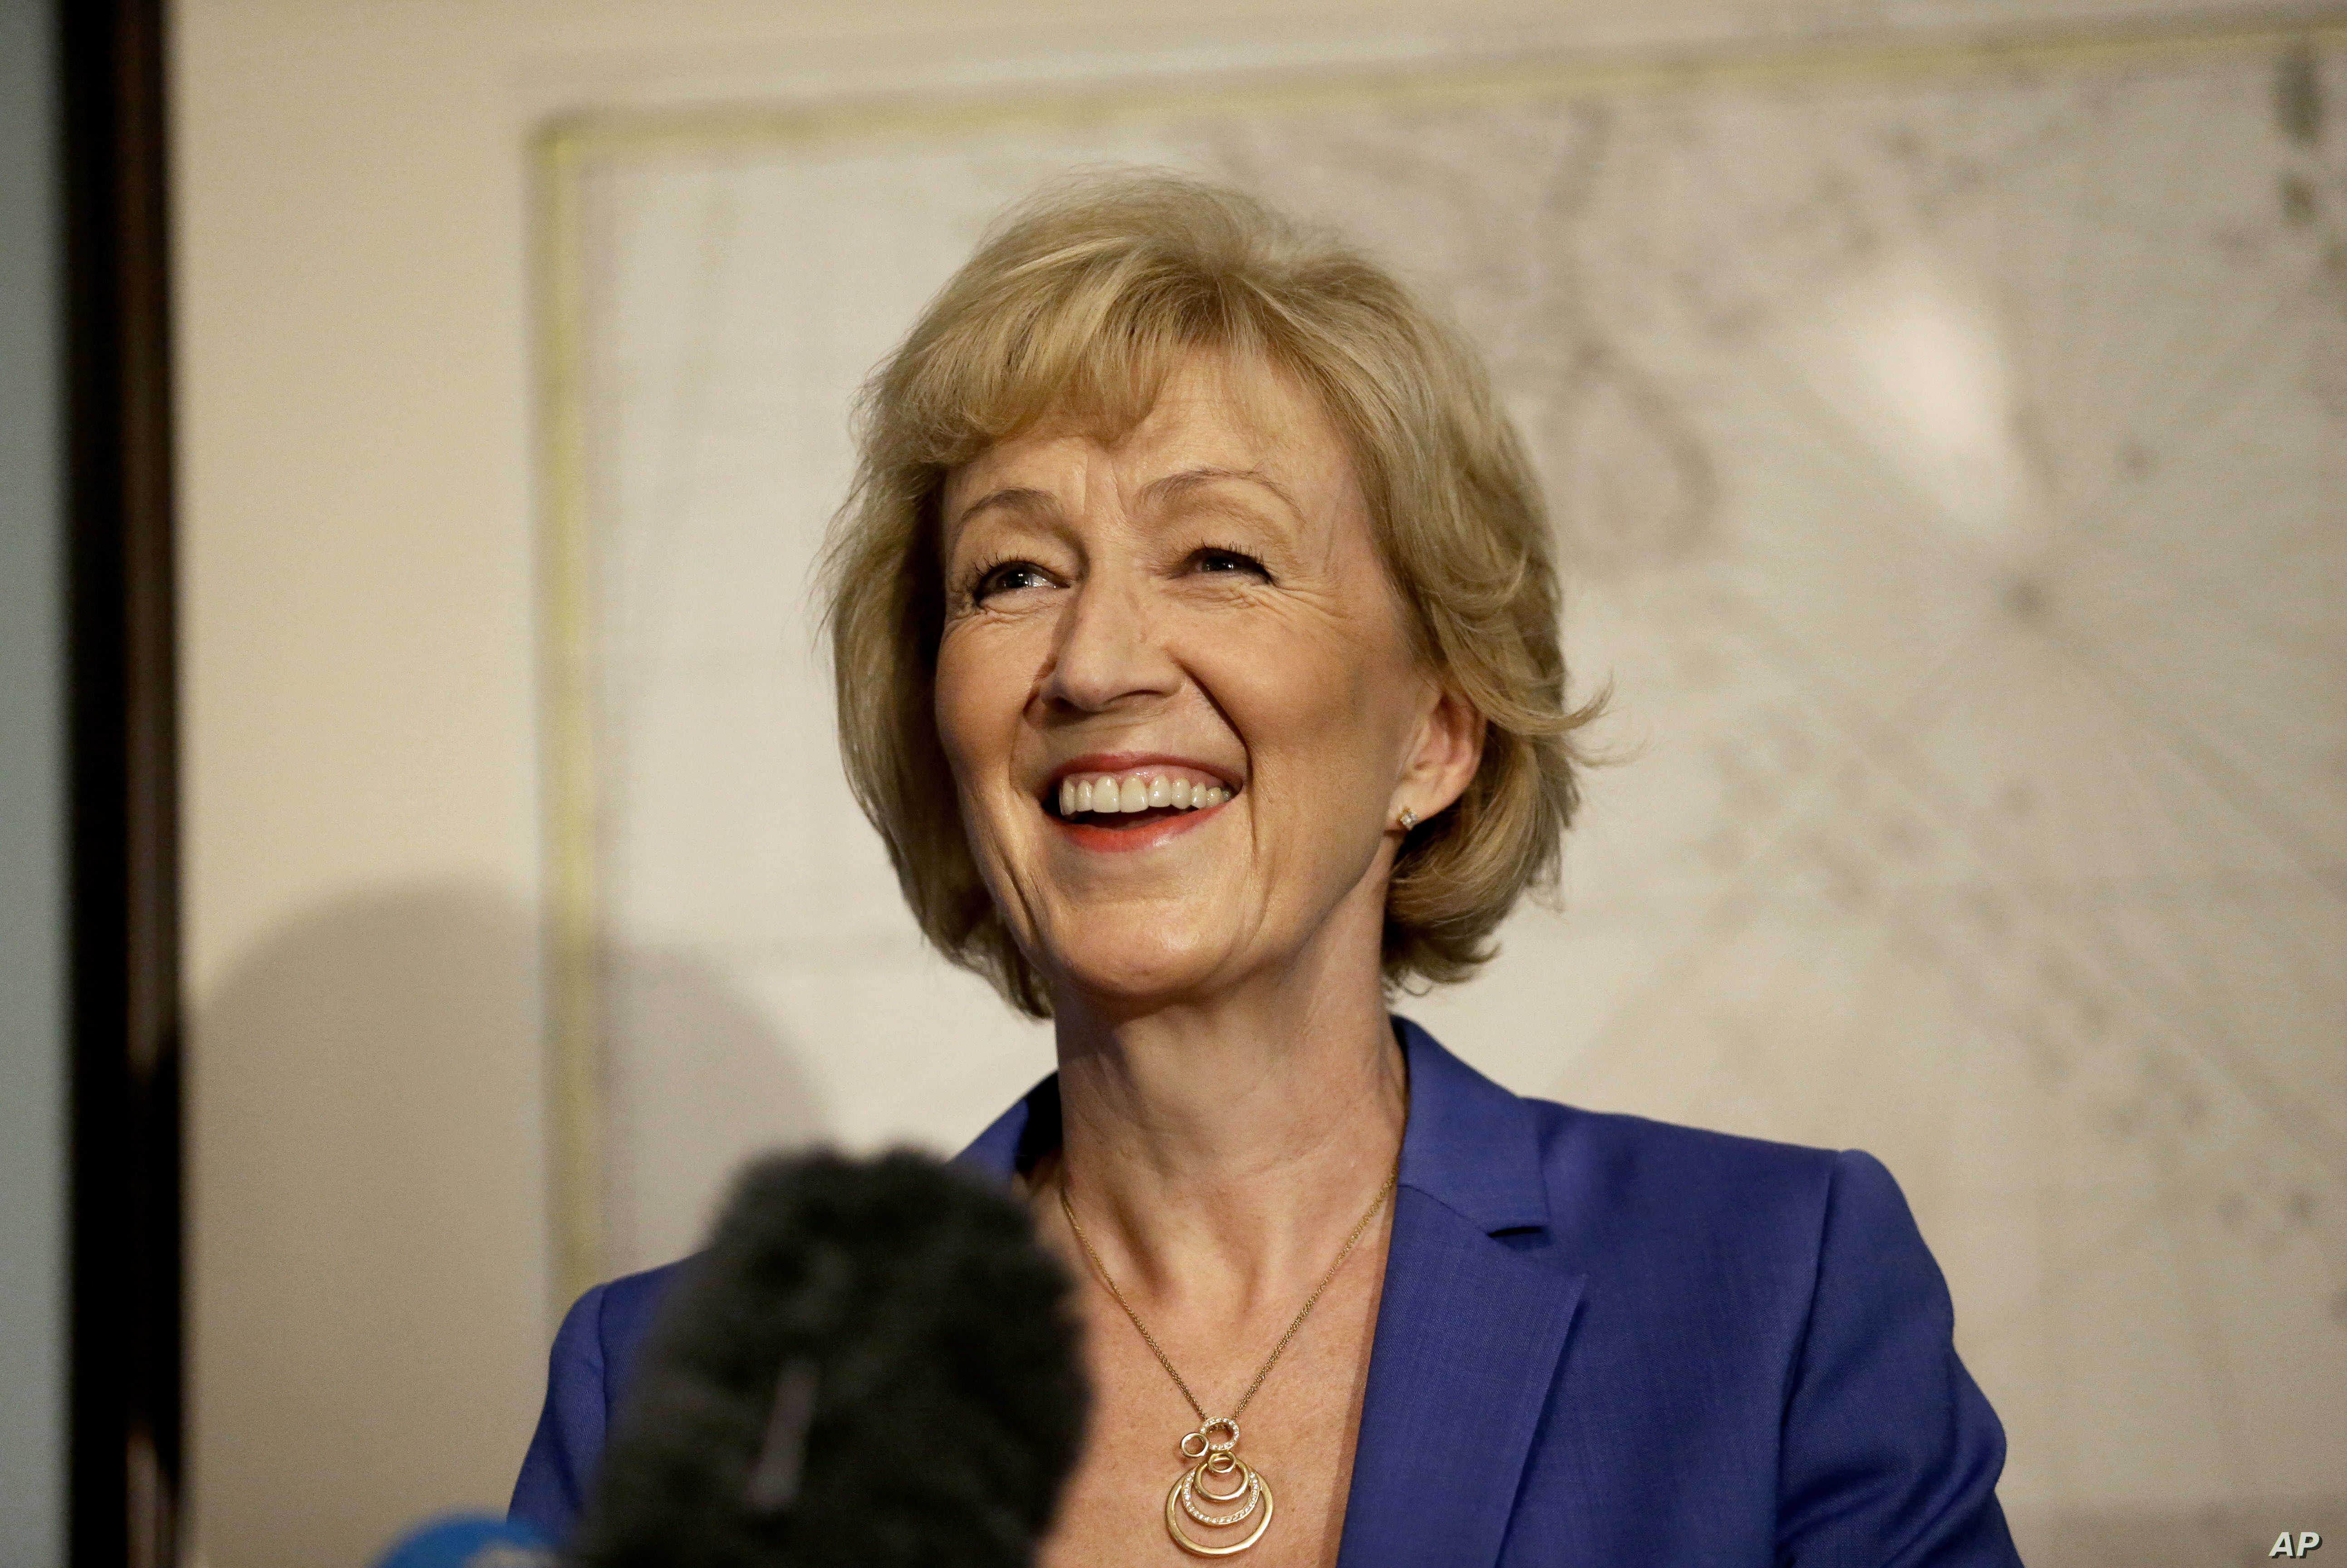 British ruling Conservative Party Member of Parliament, Andrea Leadsom, launches her campaign in London, July 4, 2016.